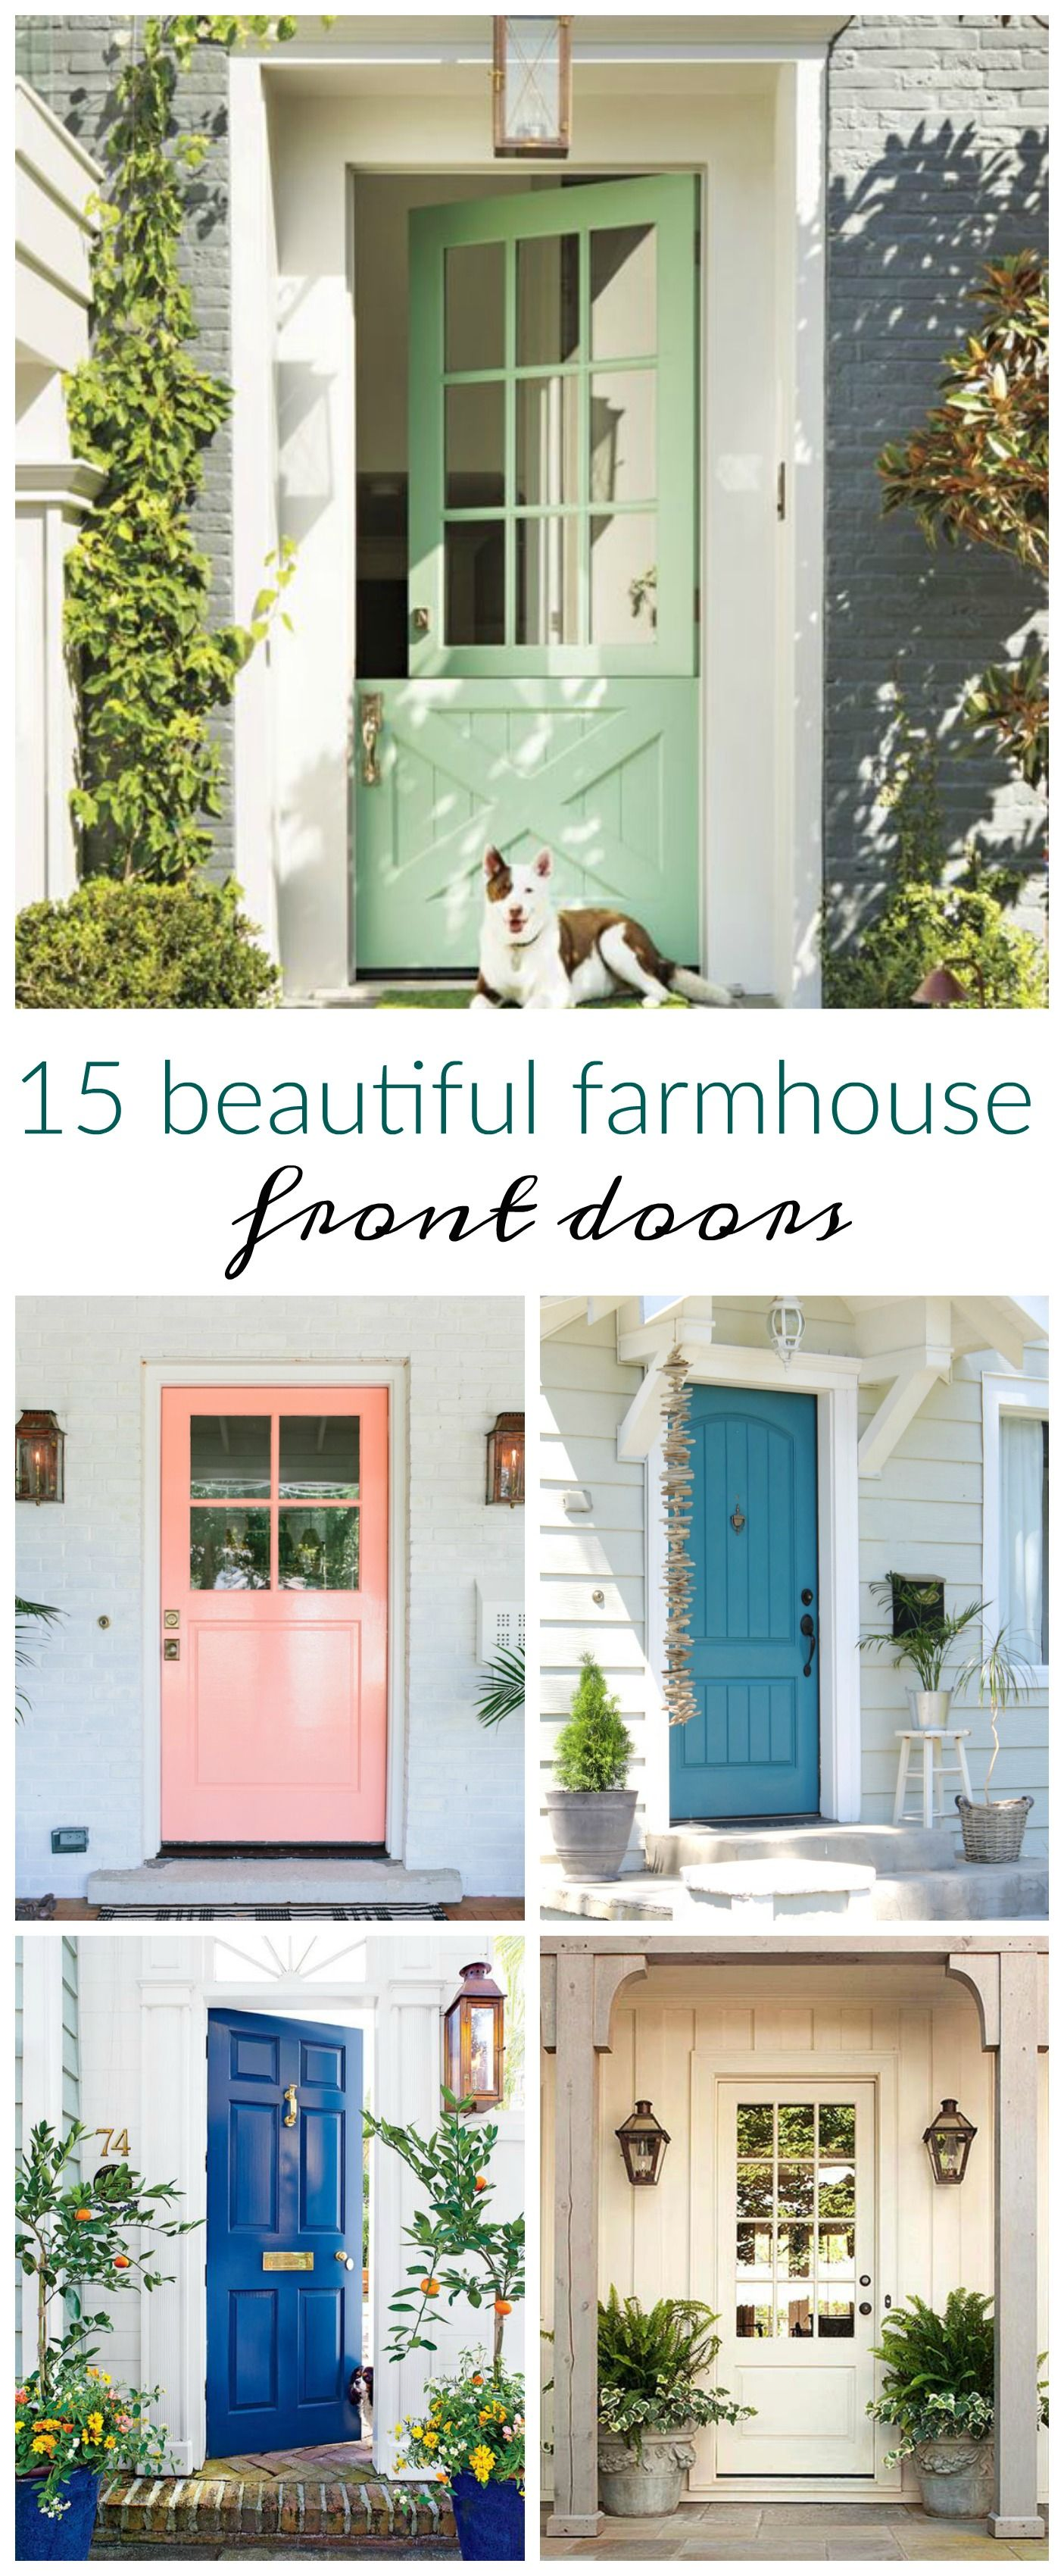 15 Beautiful Farmhouse Front Doors